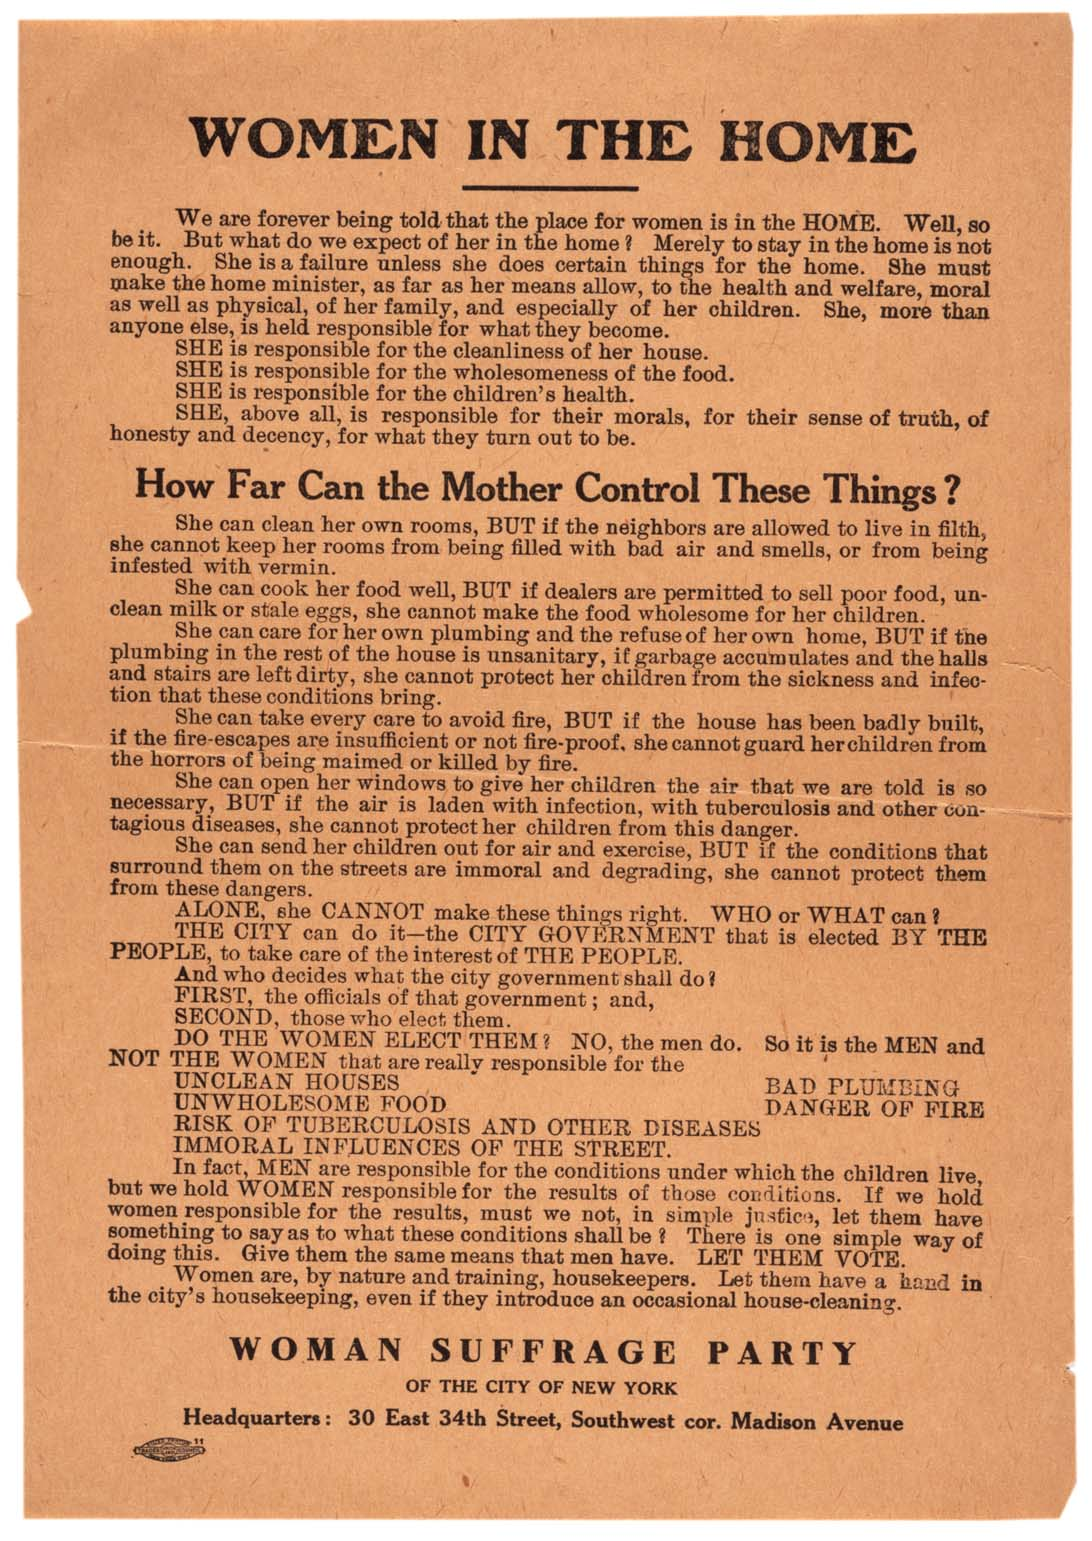 Woman Suffrage Party of the City of New York, Women in the Home broadside, ca. 1915. (Gilder Lehrman Collection)